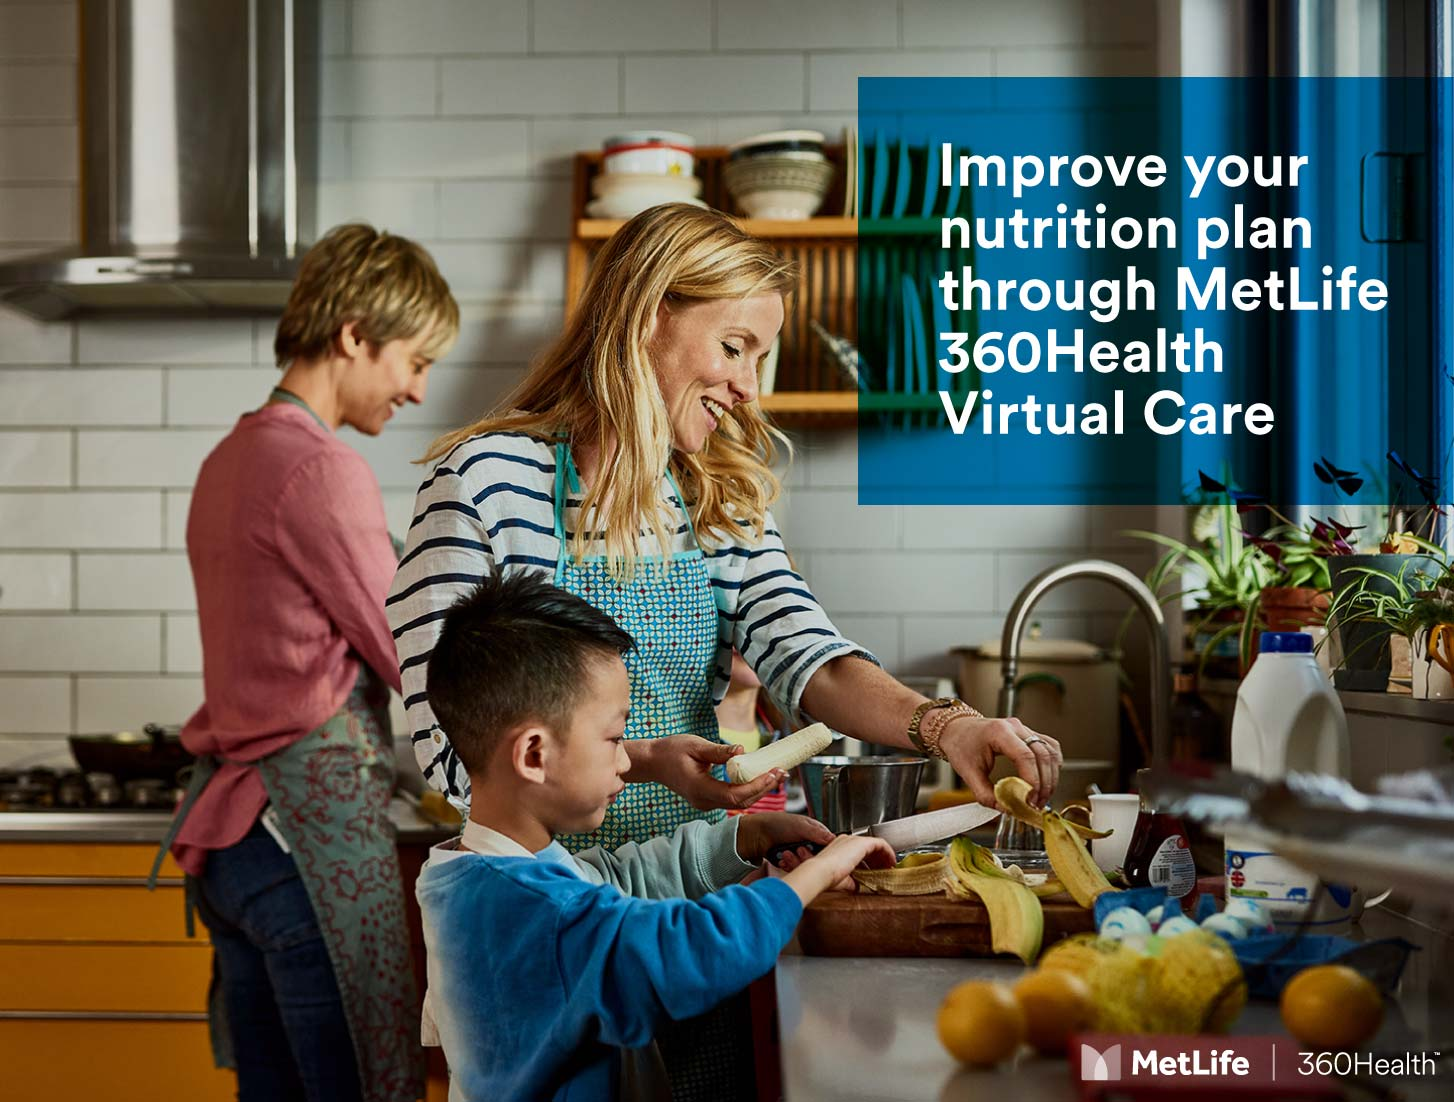 Improve your nutrition plan through MetLife 360Health Virtual Care